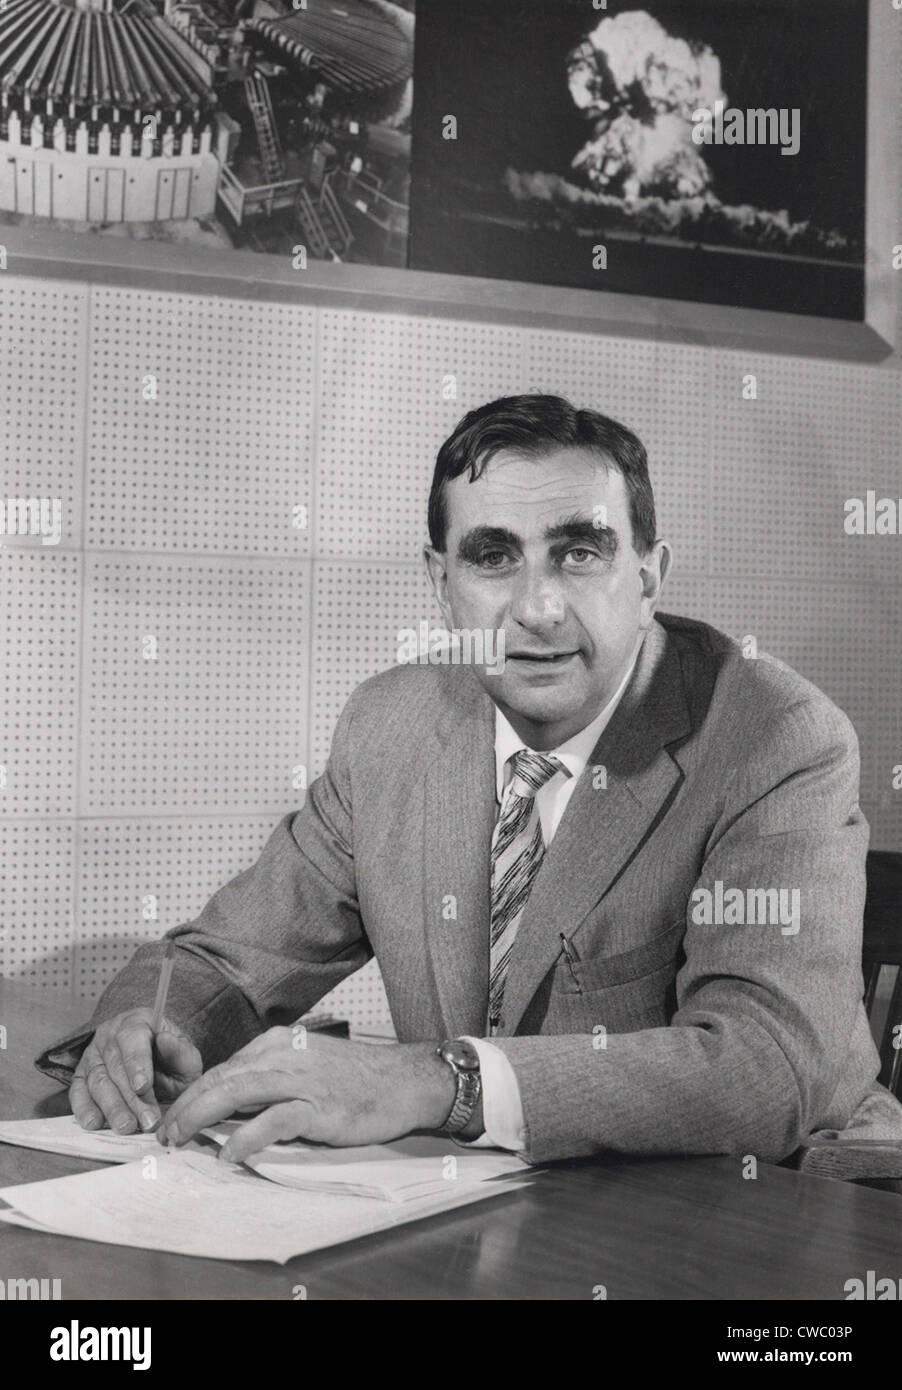 Edward Teller (1908-2003), in 1958, as Director of Lawrence Livermore National Laboratory. - Stock Image